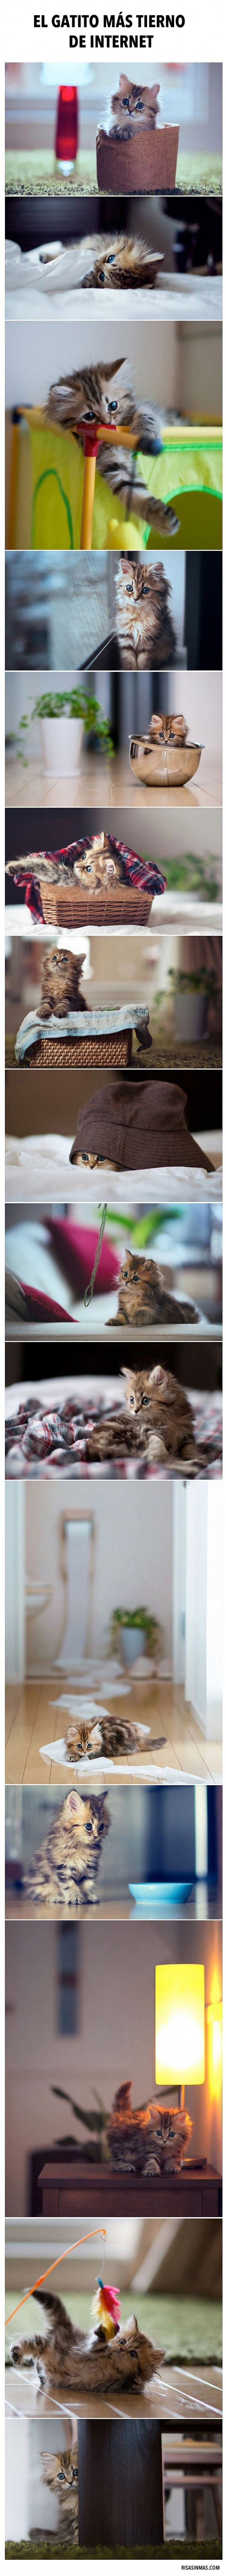 best adorables images on pinterest funny animals a house and